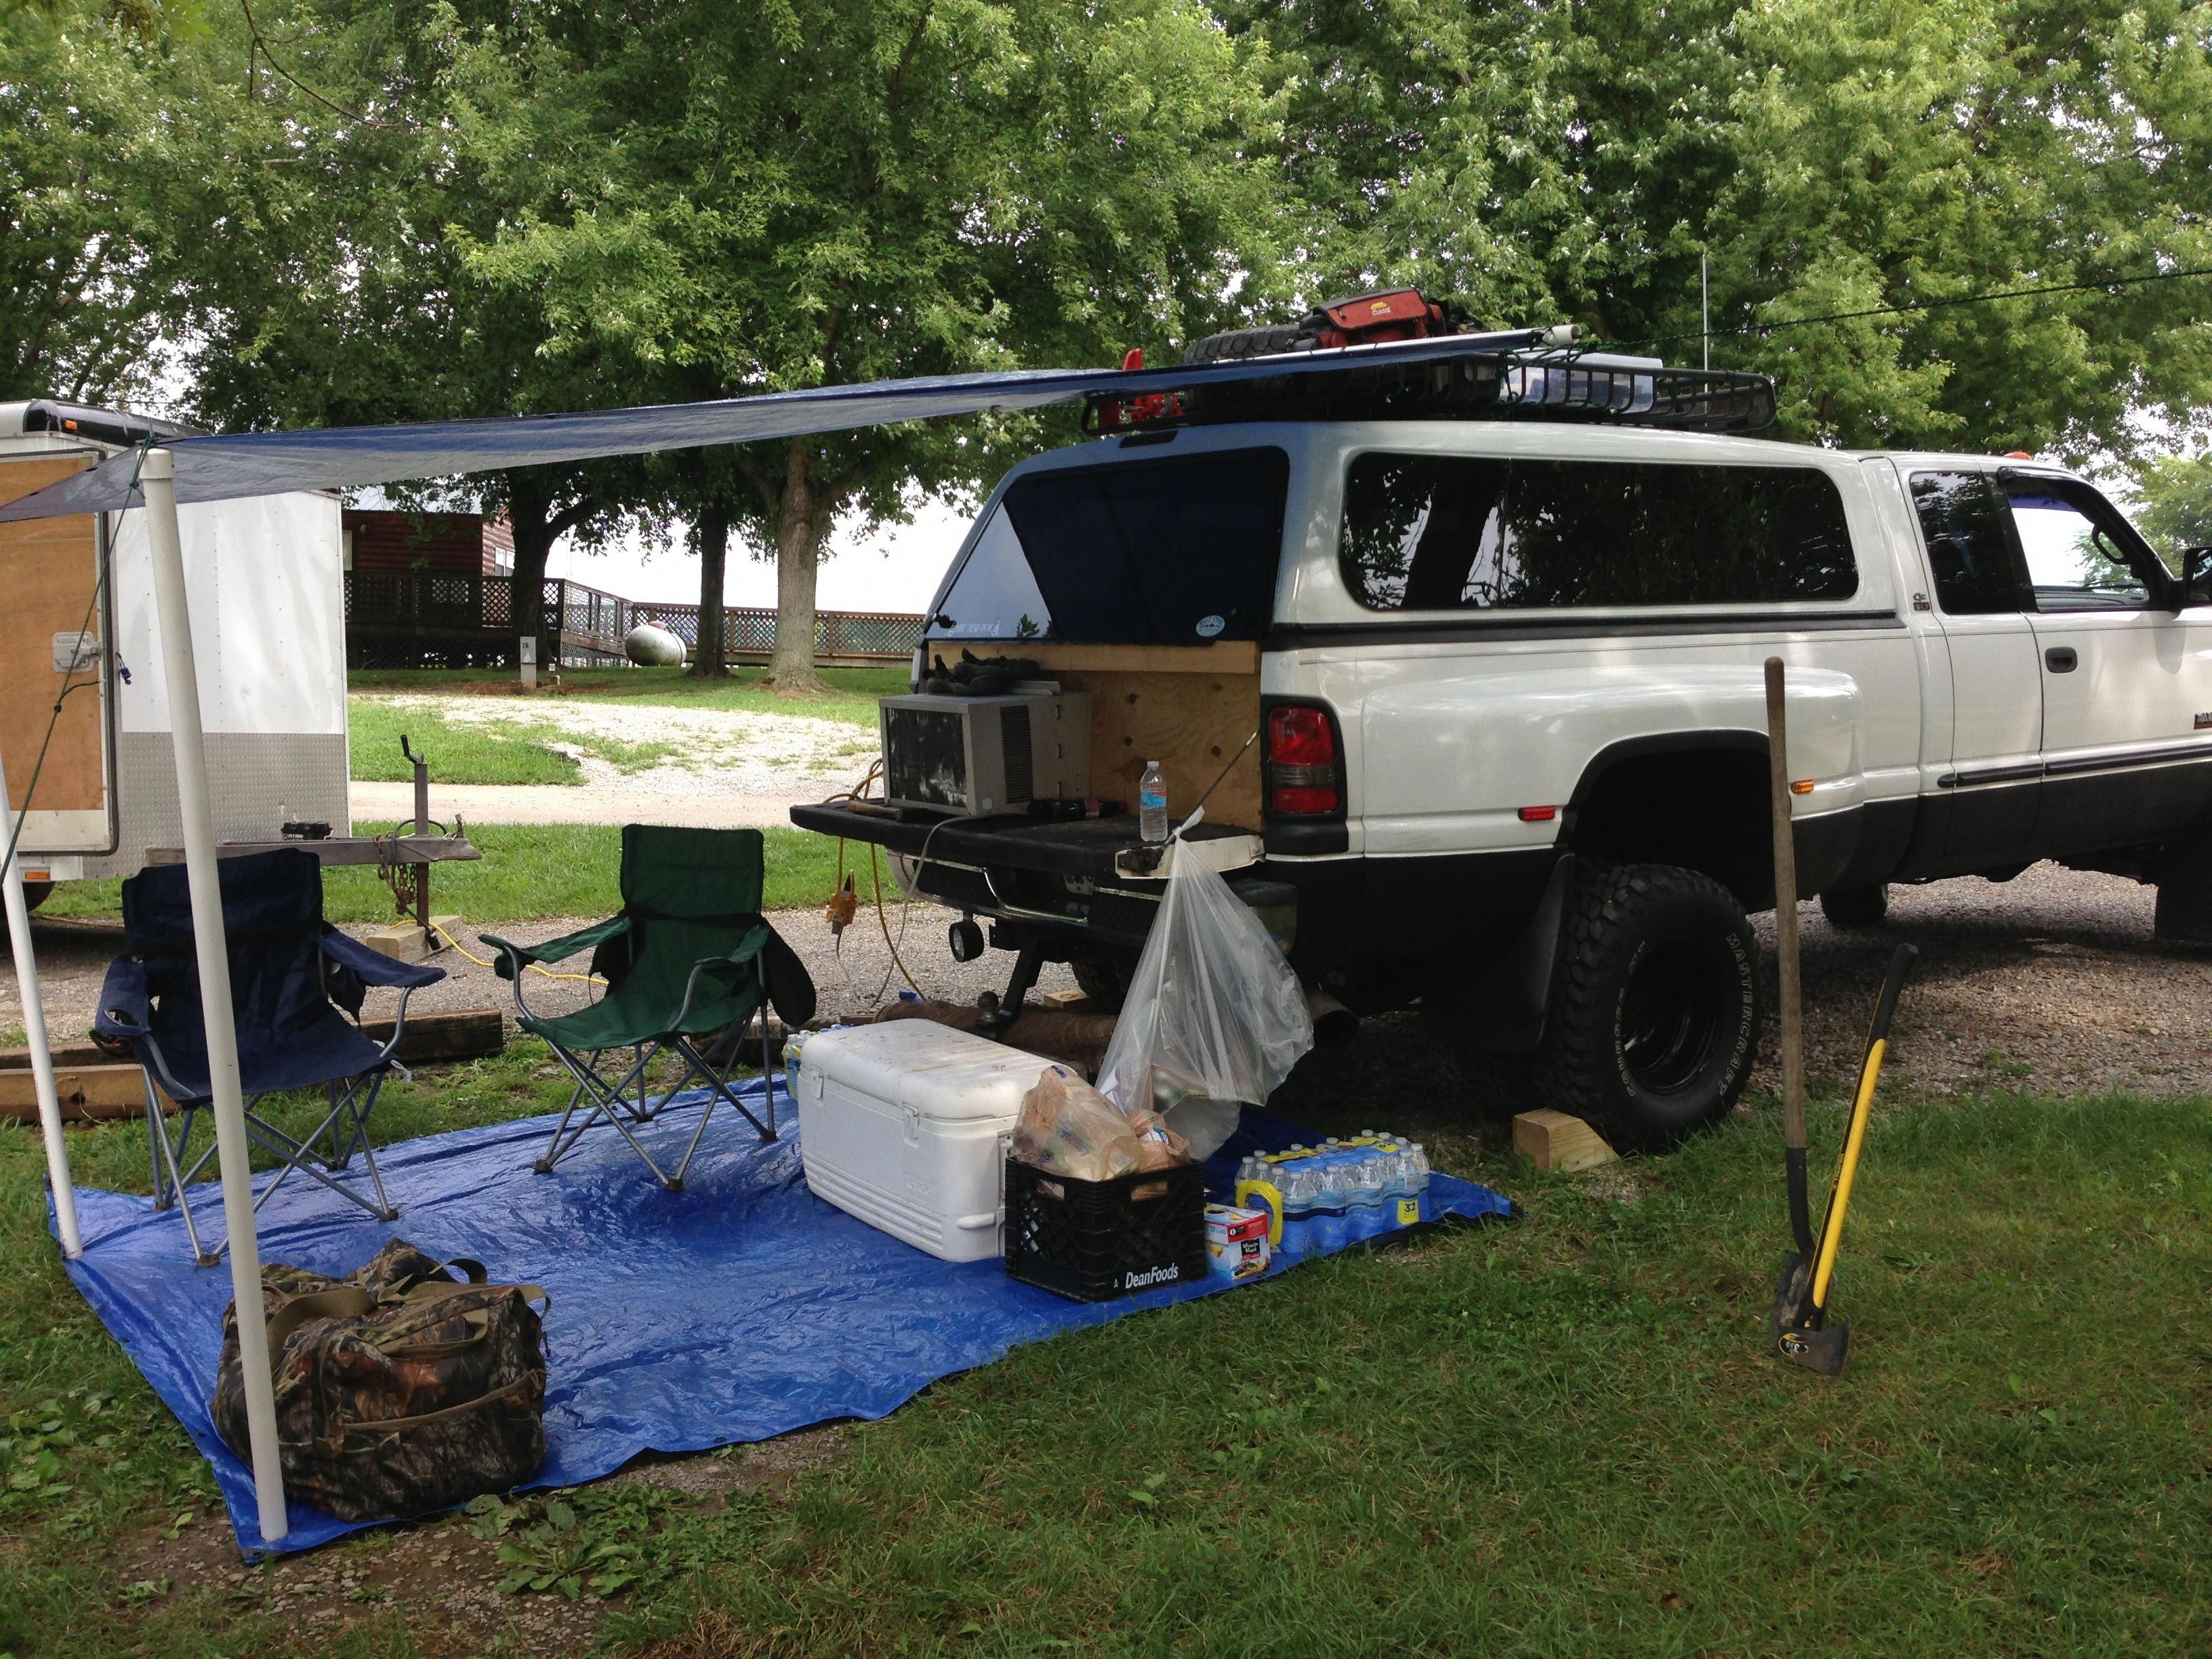 Truck camping. Air conditioner and queen size air mattress